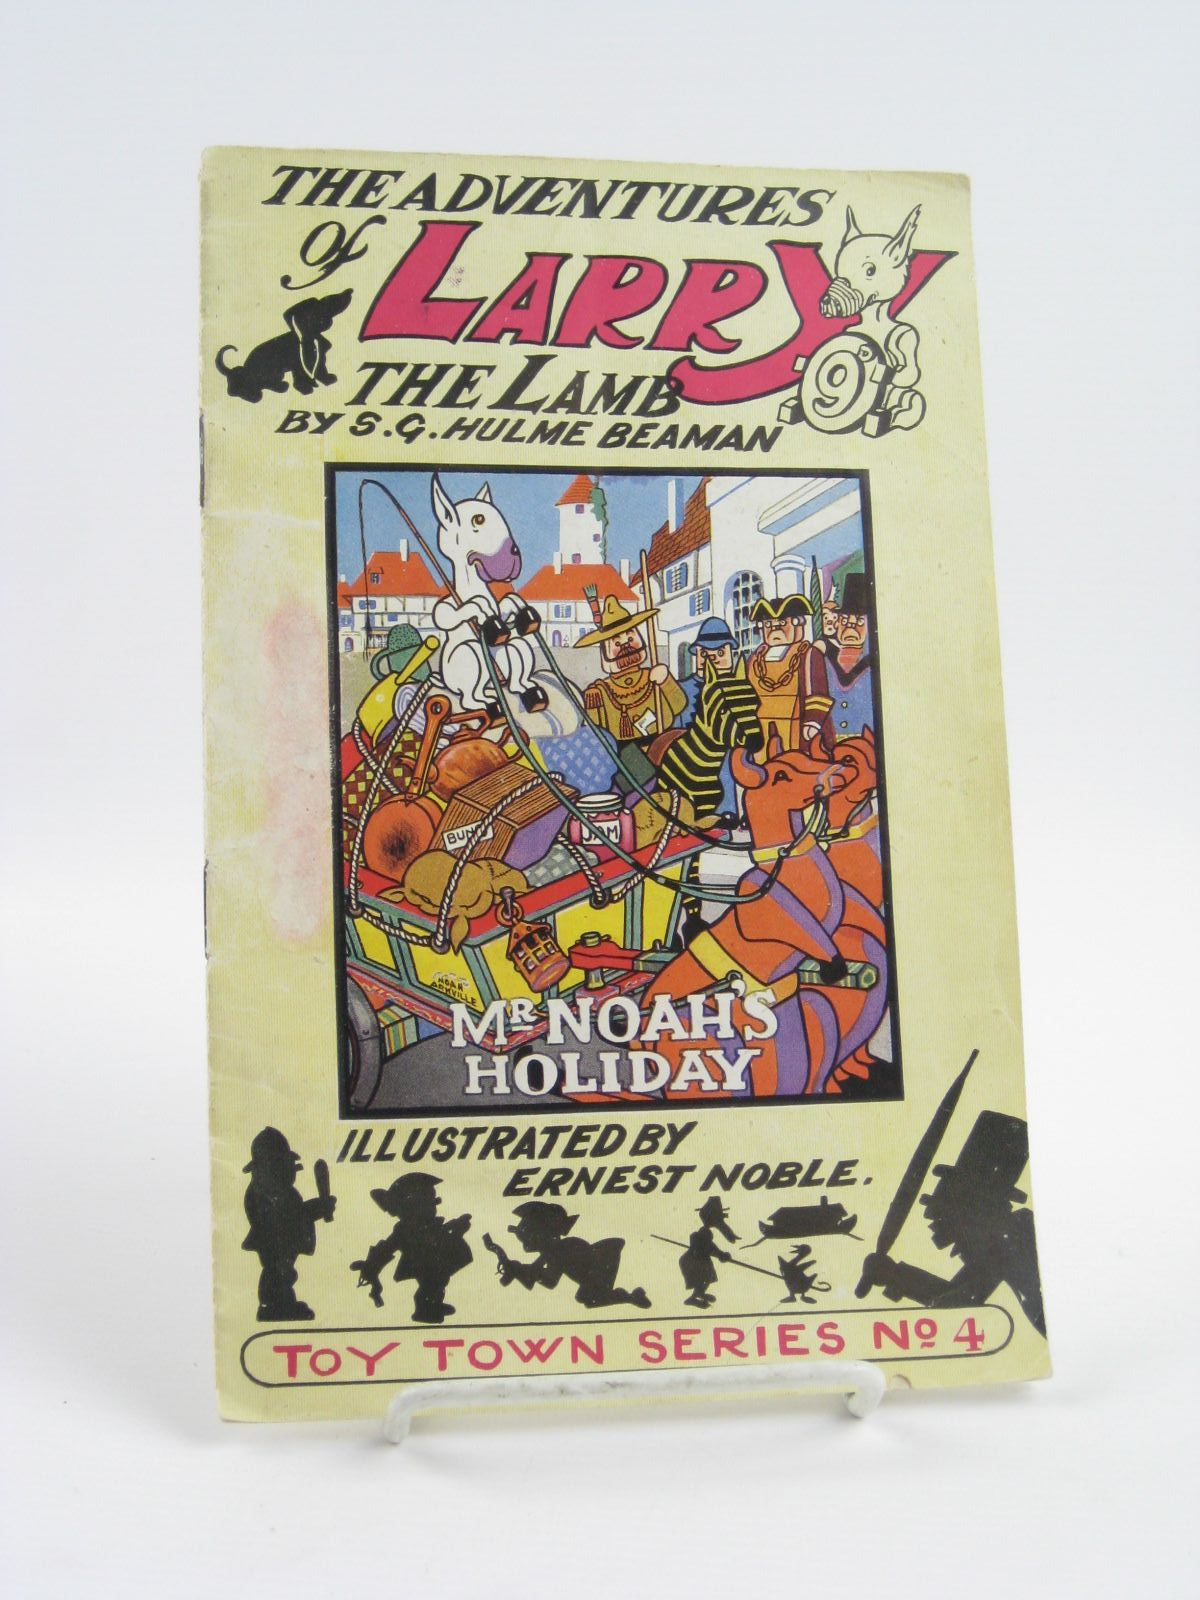 Photo of THE ADVENTURES OF LARRY THE LAMB - MR. NOAH'S HOLIDAY written by Beaman, S.G. Hulme illustrated by Noble, Ernest published by George Lapworth & Co Ltd. (STOCK CODE: 1401614)  for sale by Stella & Rose's Books